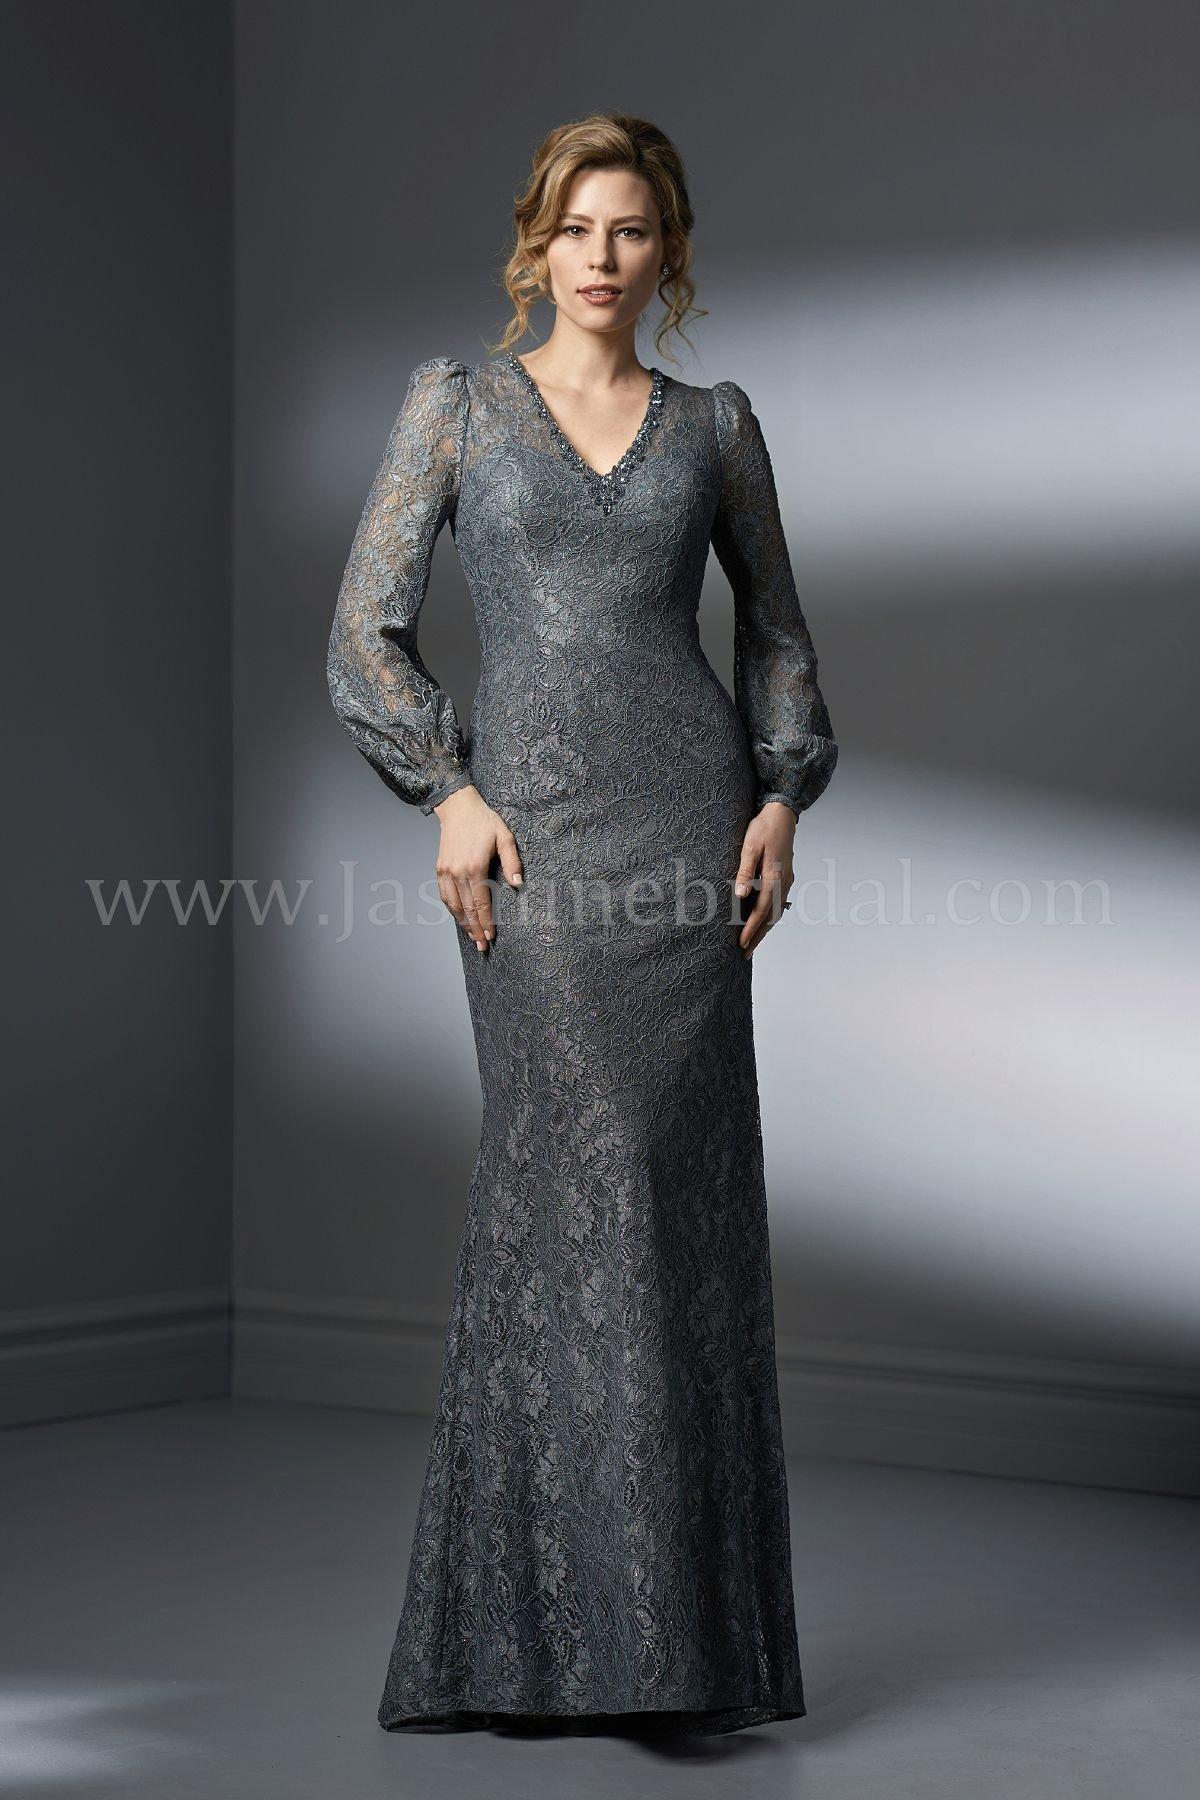 mother-of-the-bride-dresses-K198061-F